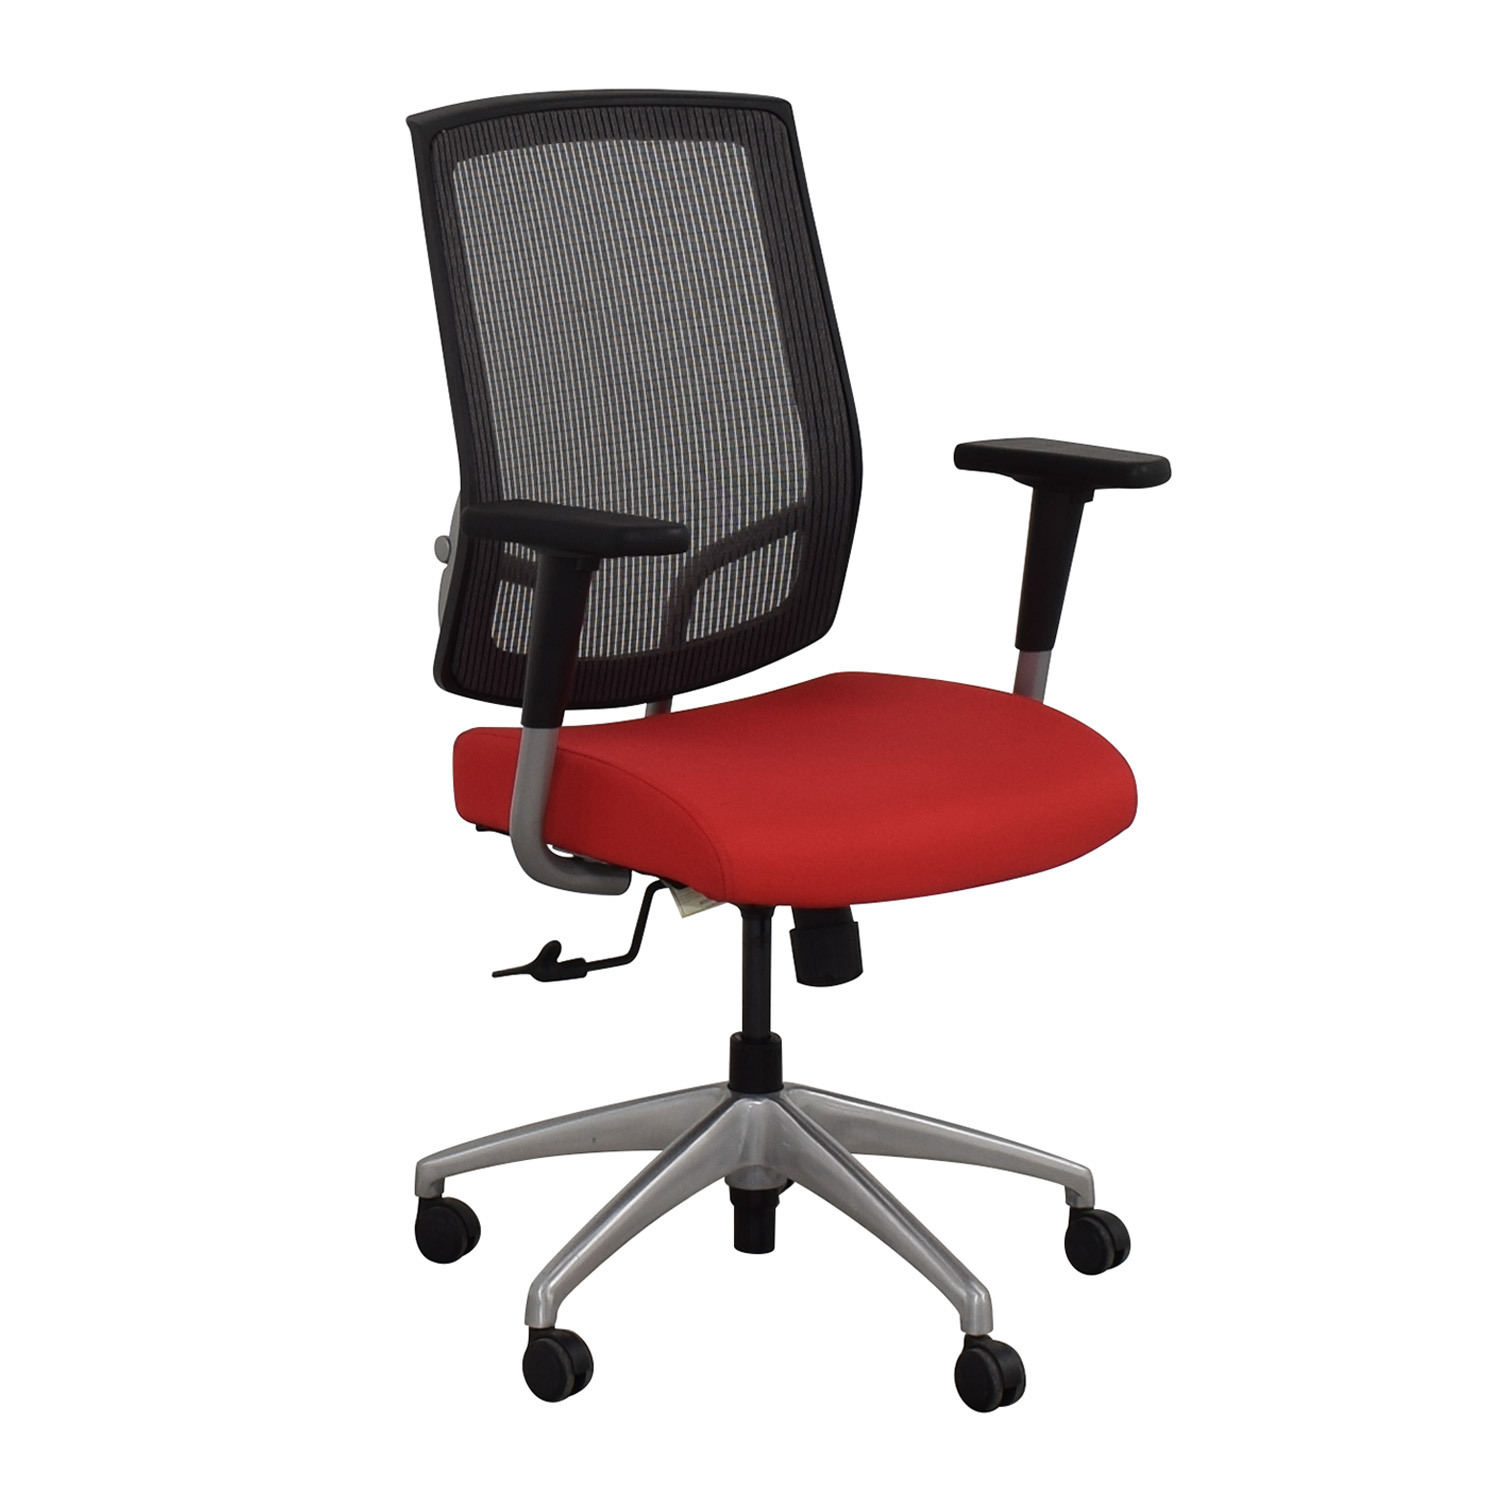 SitOnIt Focus High Back Office Chair / Chairs